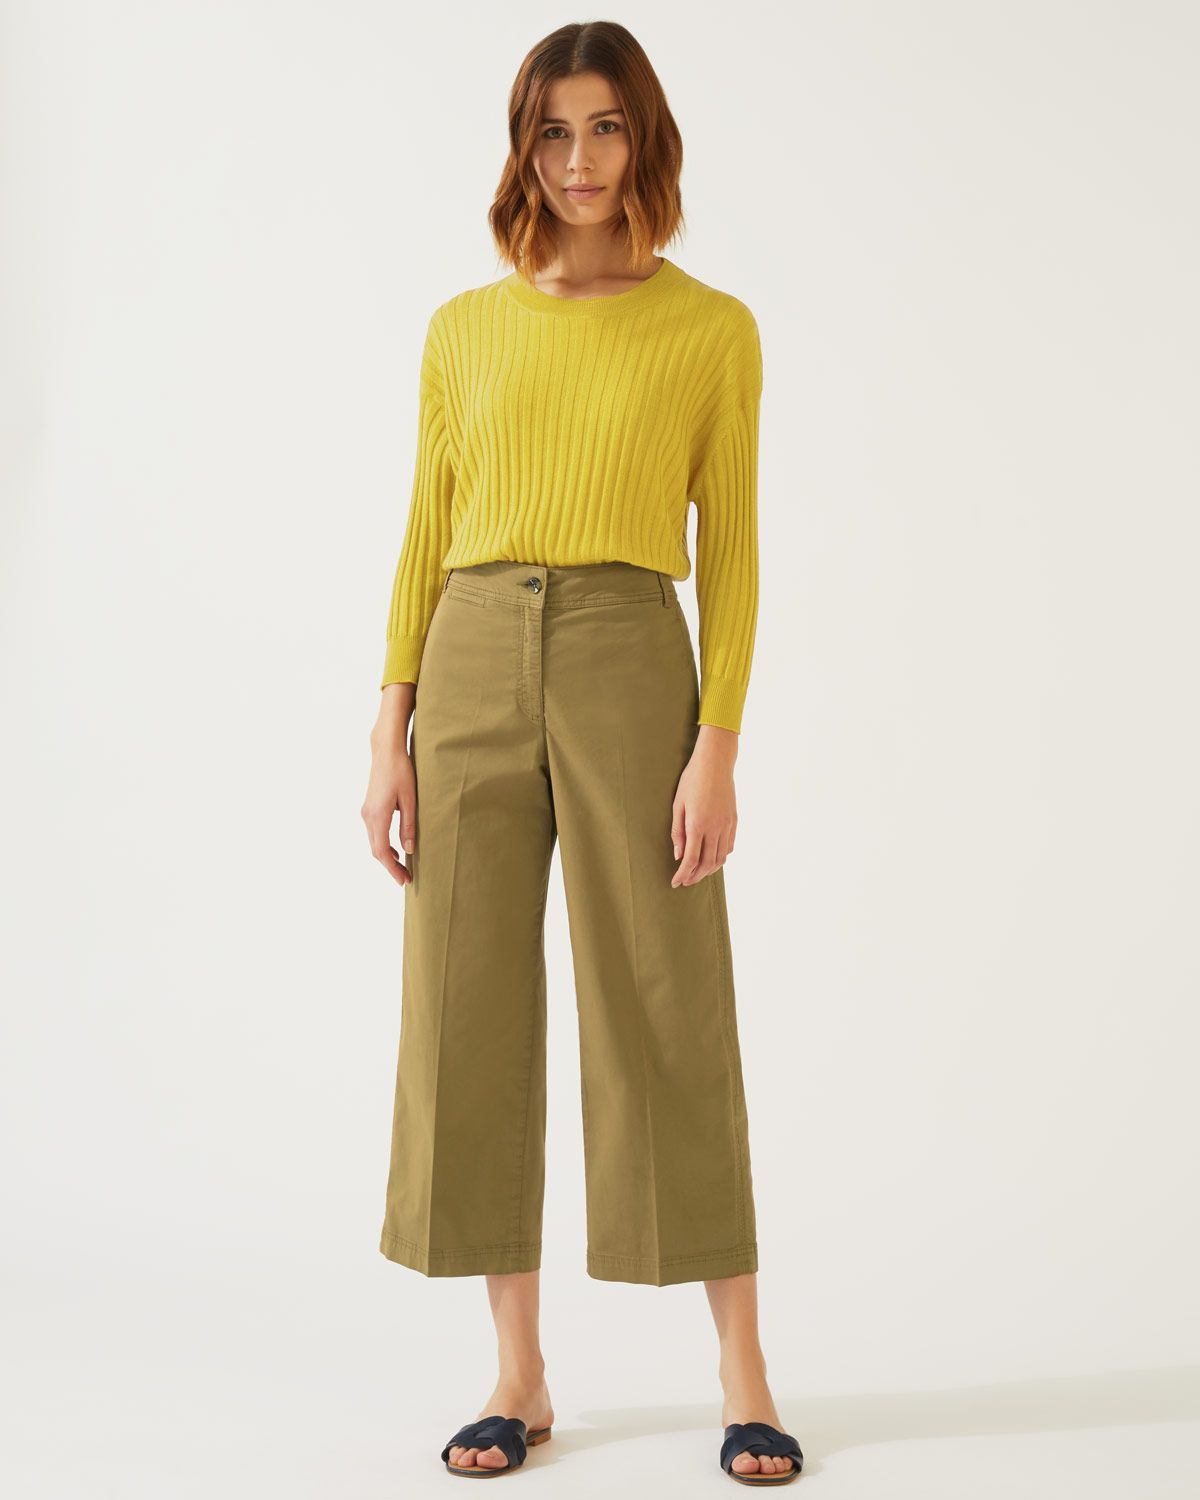 High Waist Wide Leg Chino